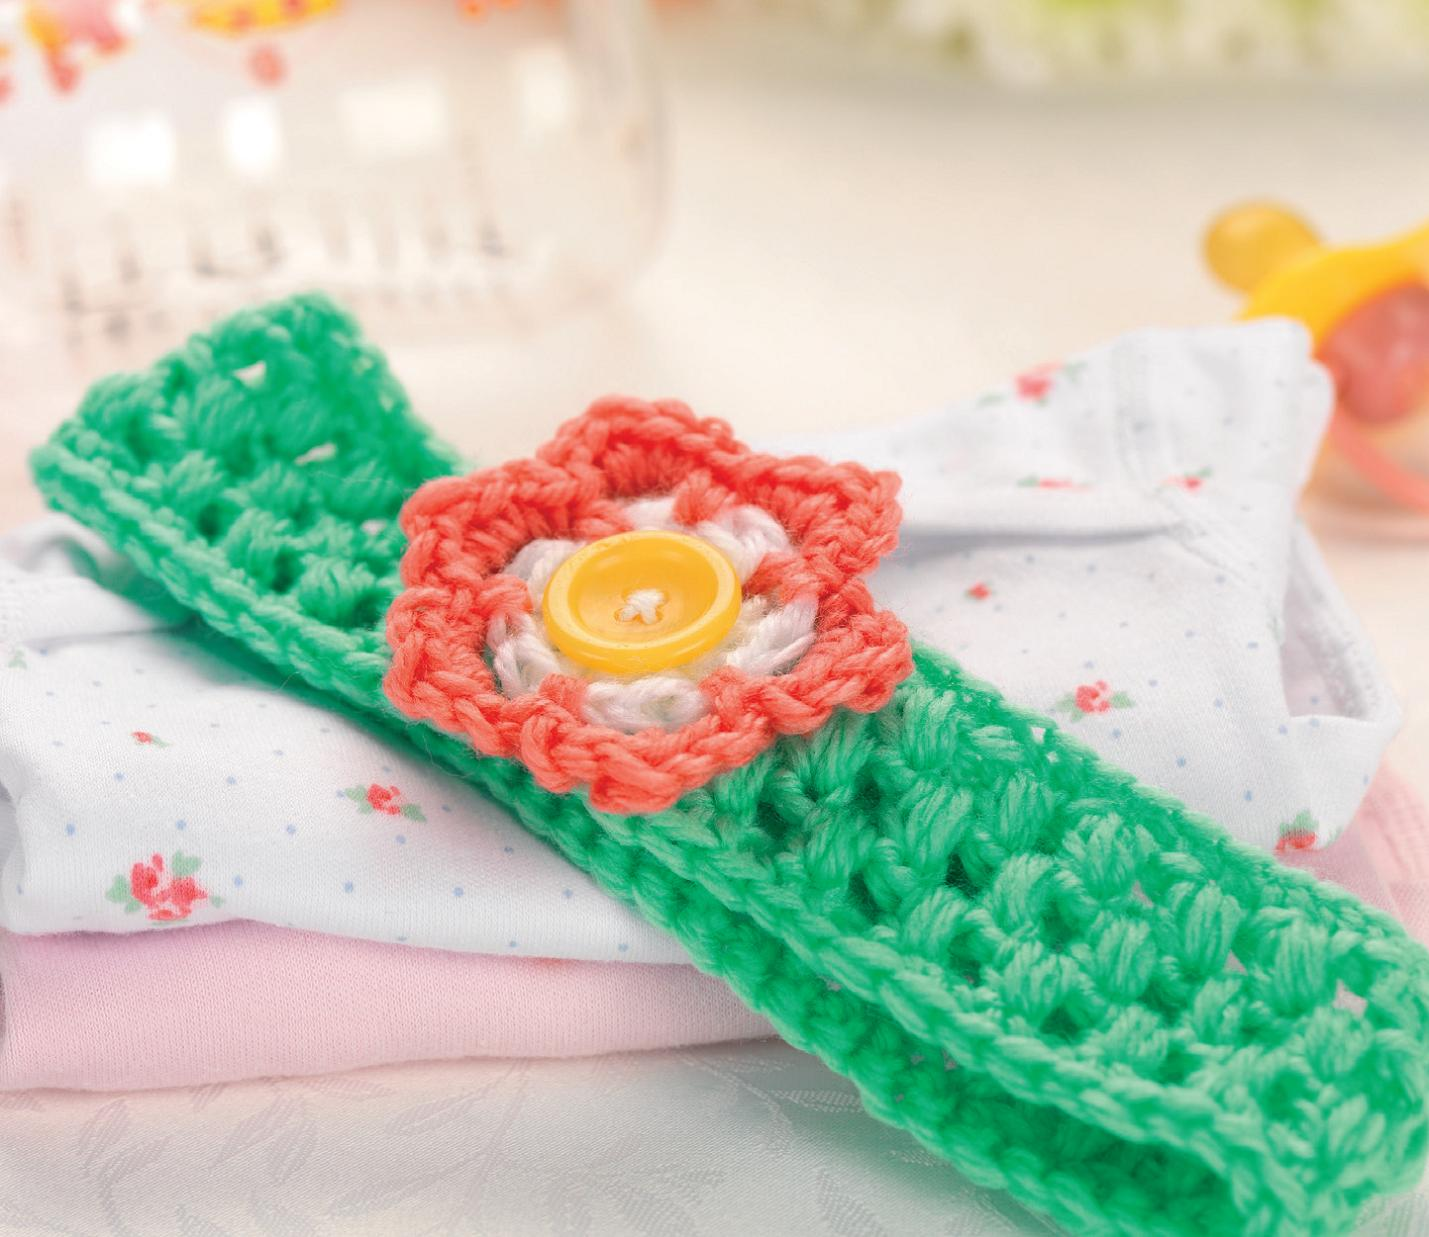 Crochet flower baby headband pattern free traitoro for crochet flower baby headband crochet pattern dt1010fo